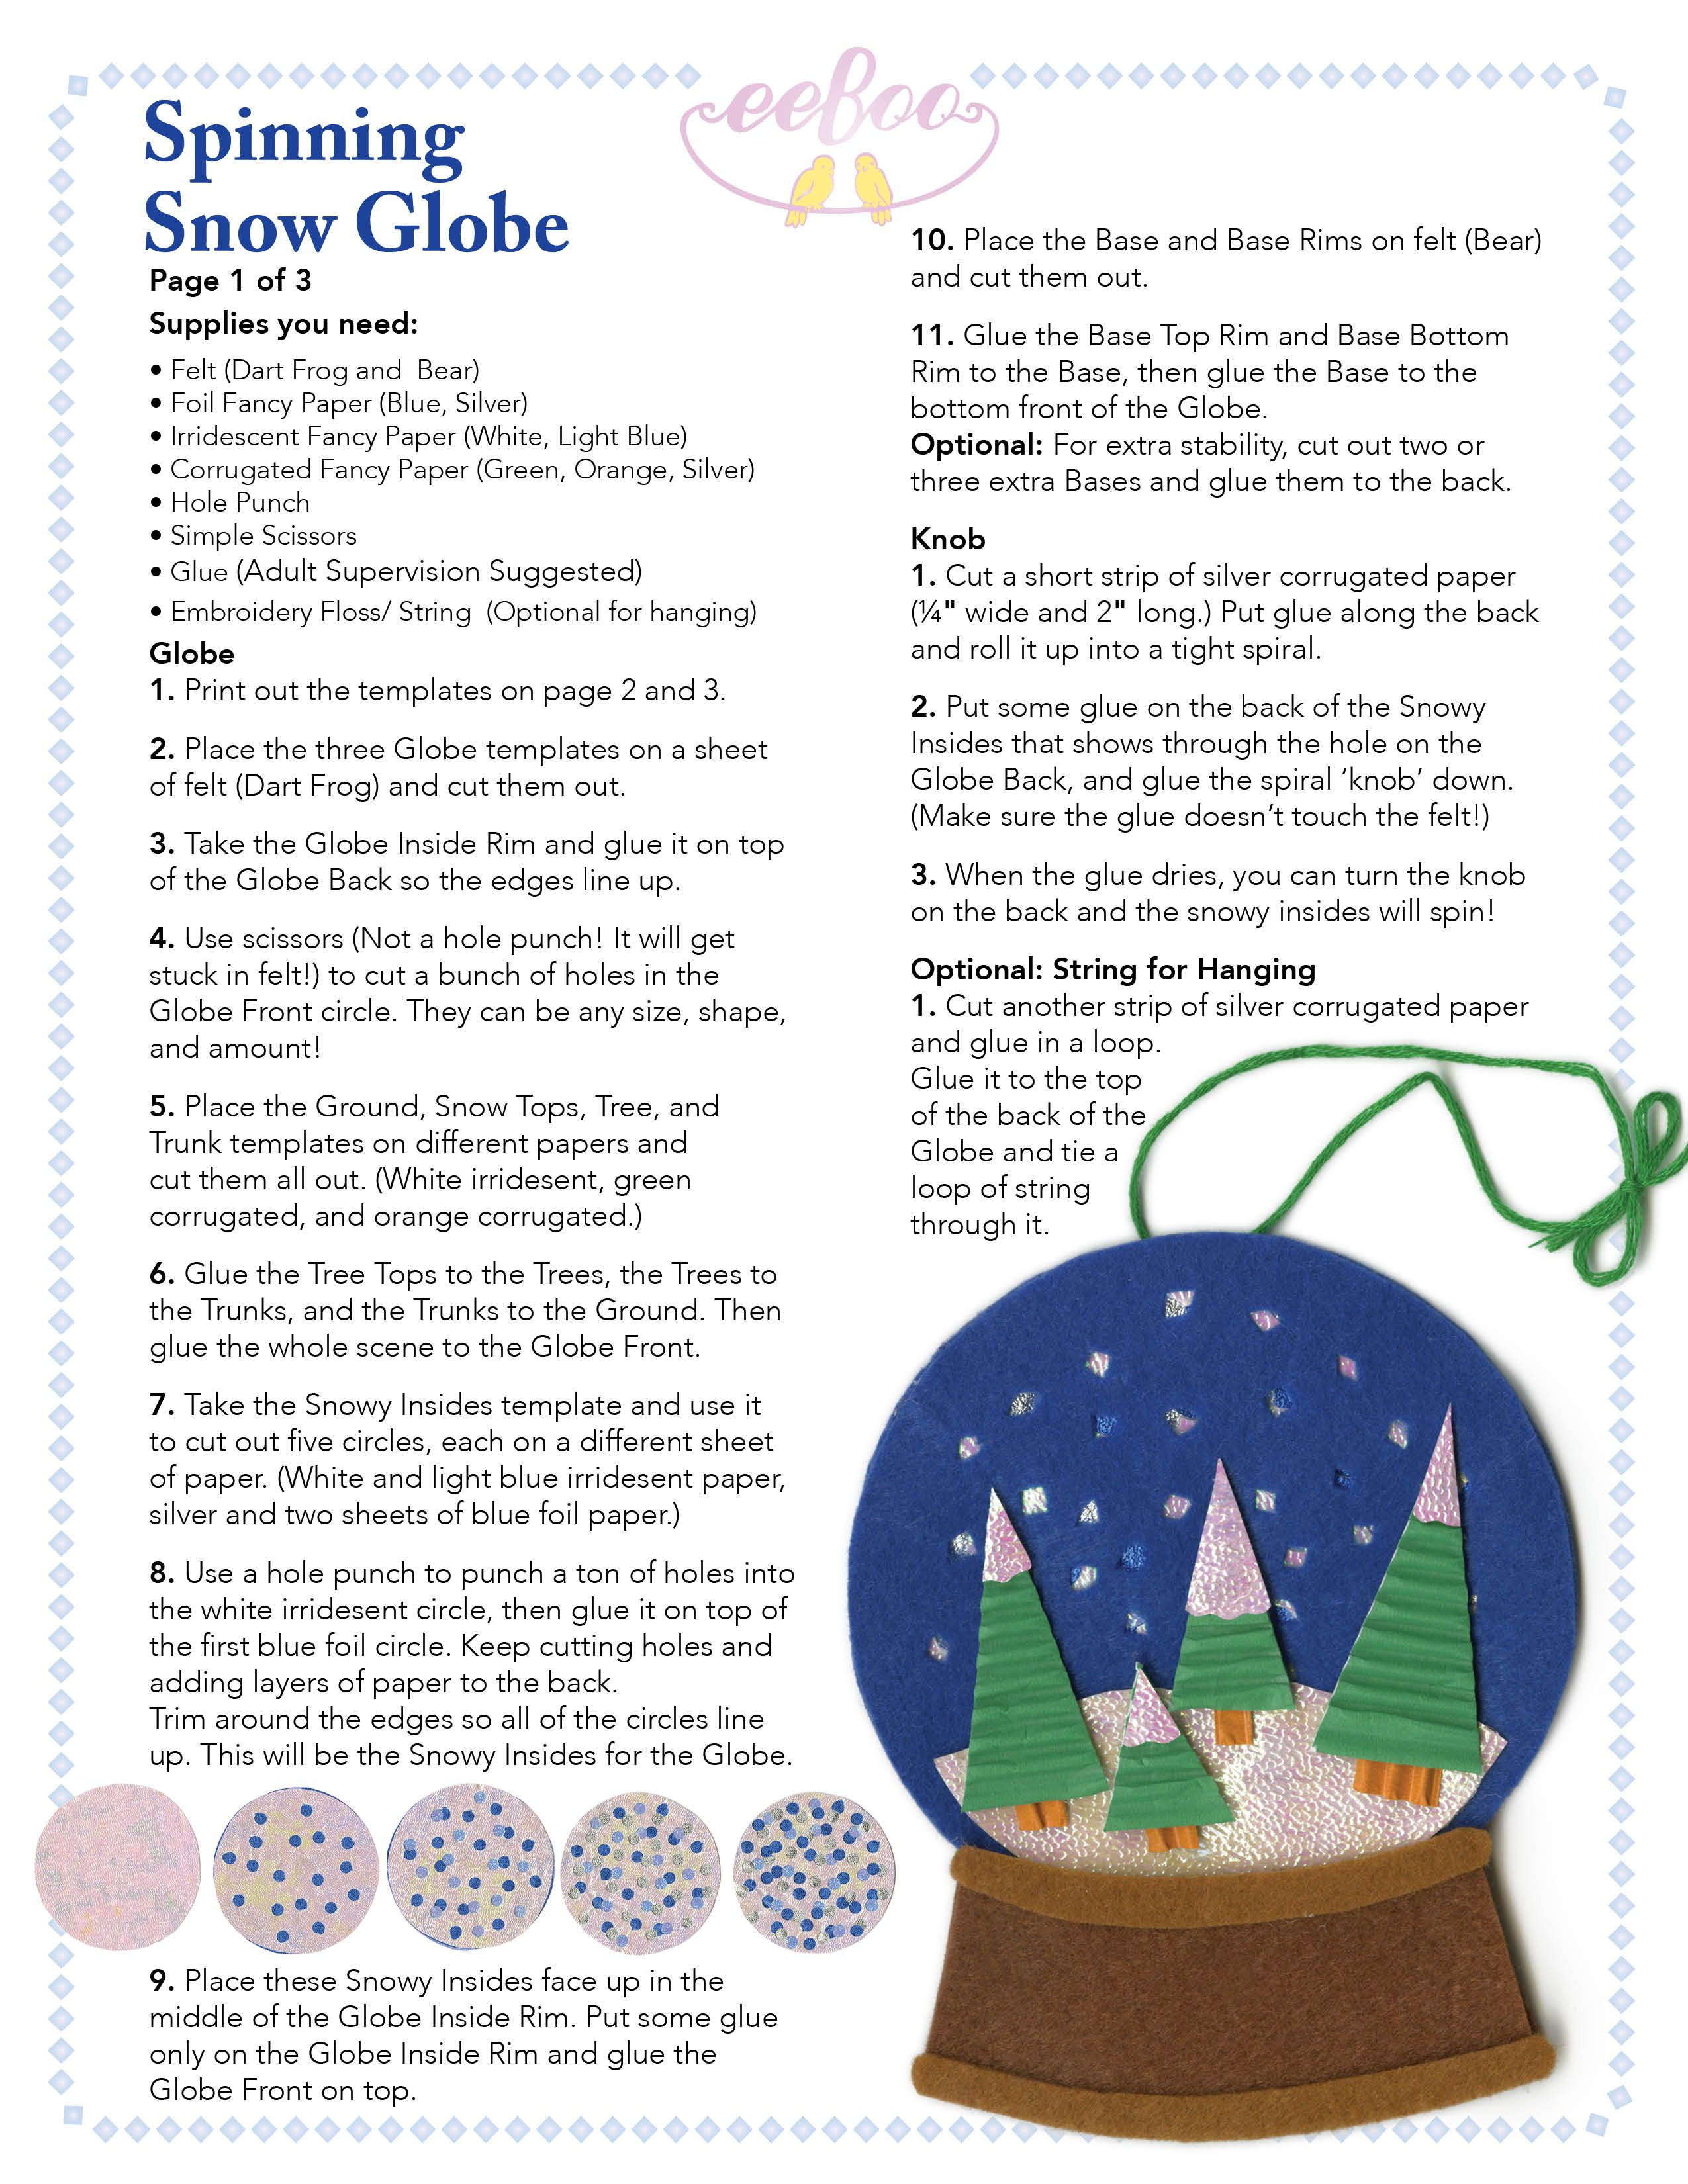 eeboo craft project oct13 snowglobe holiday craft ideas